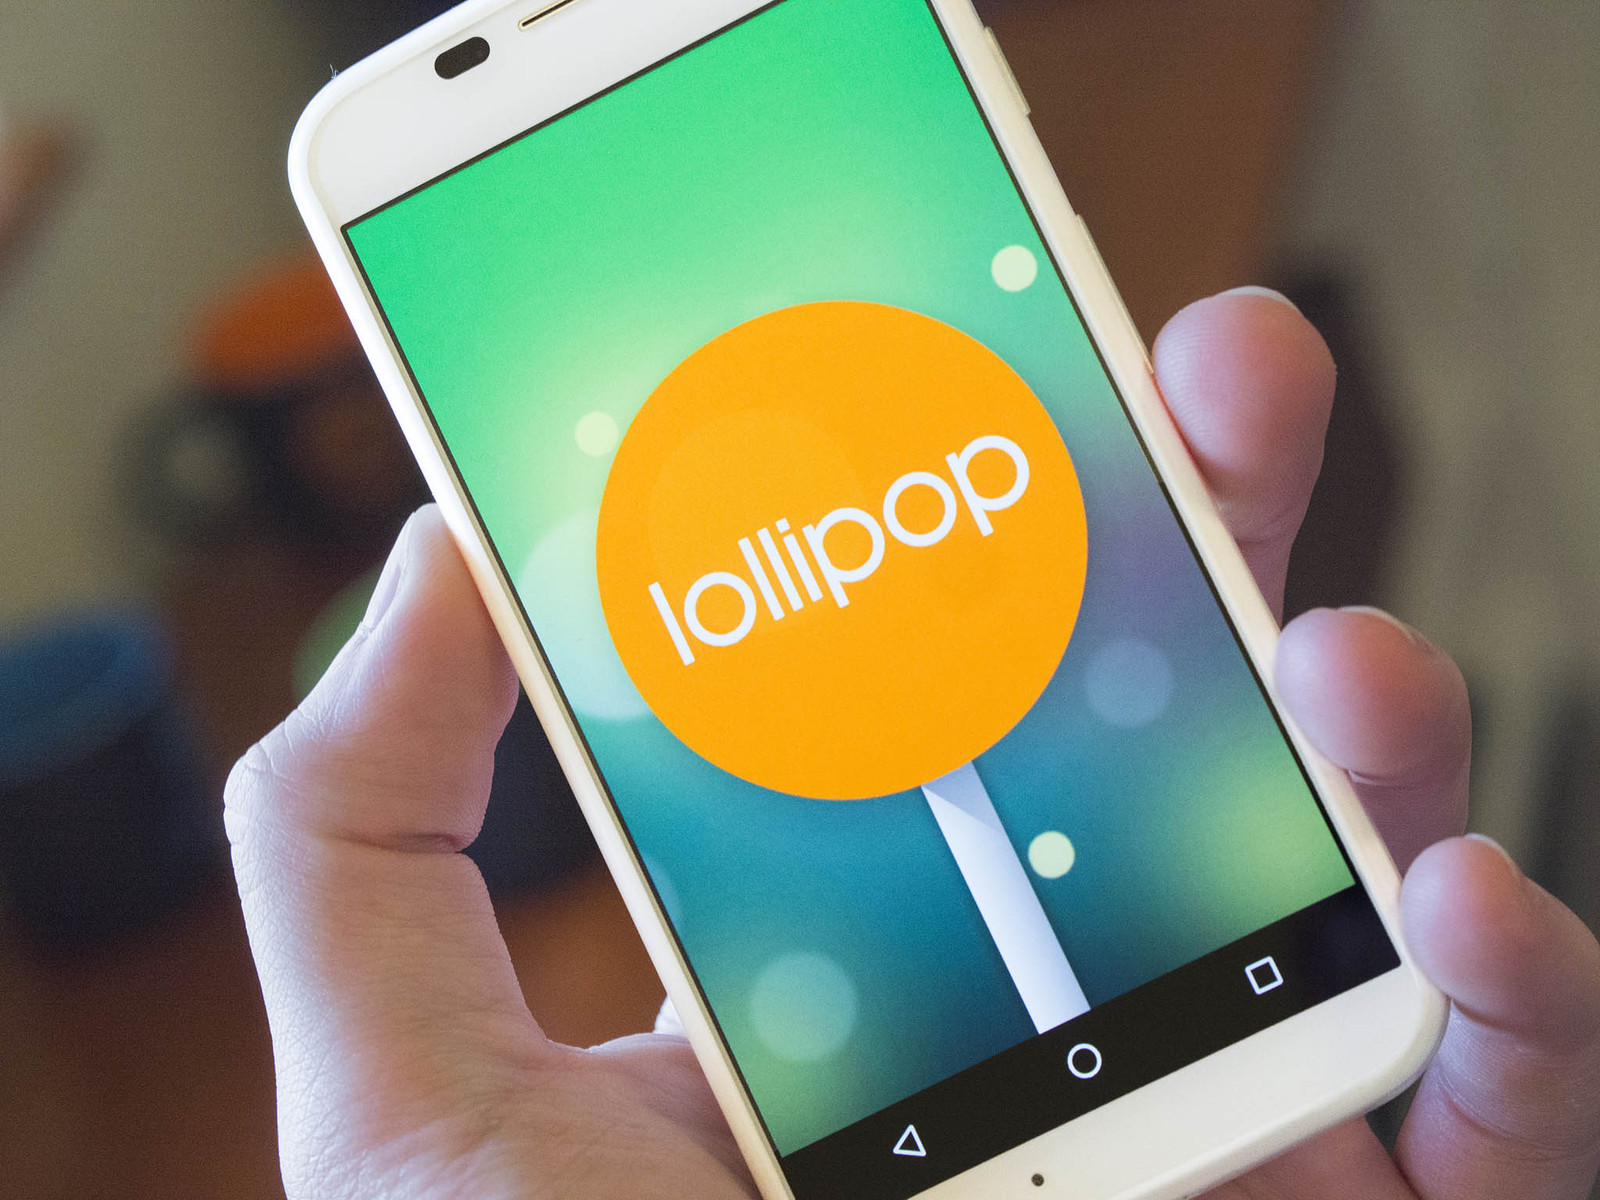 moto-x-update-android-5.1.1-lollipop-android-marshmallow